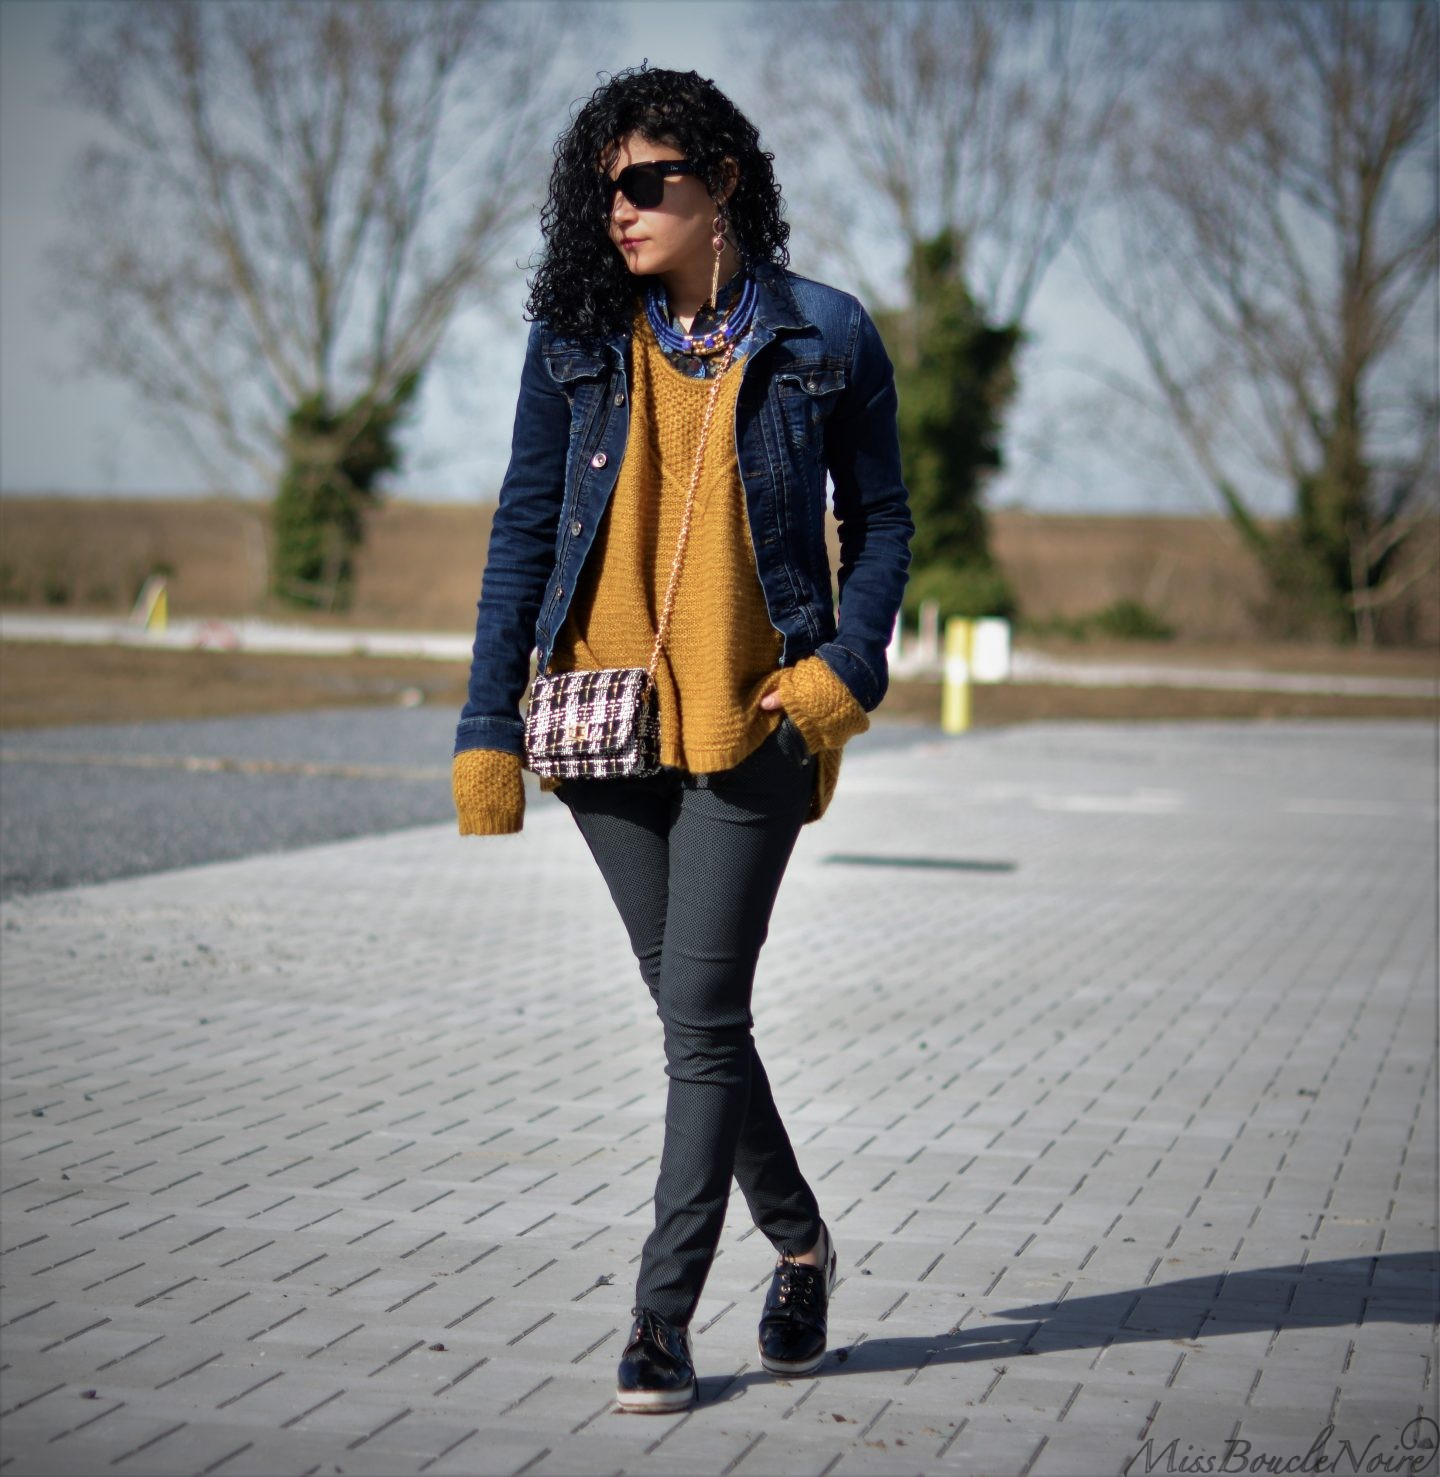 Travel outfit perfect for a sunny spring day